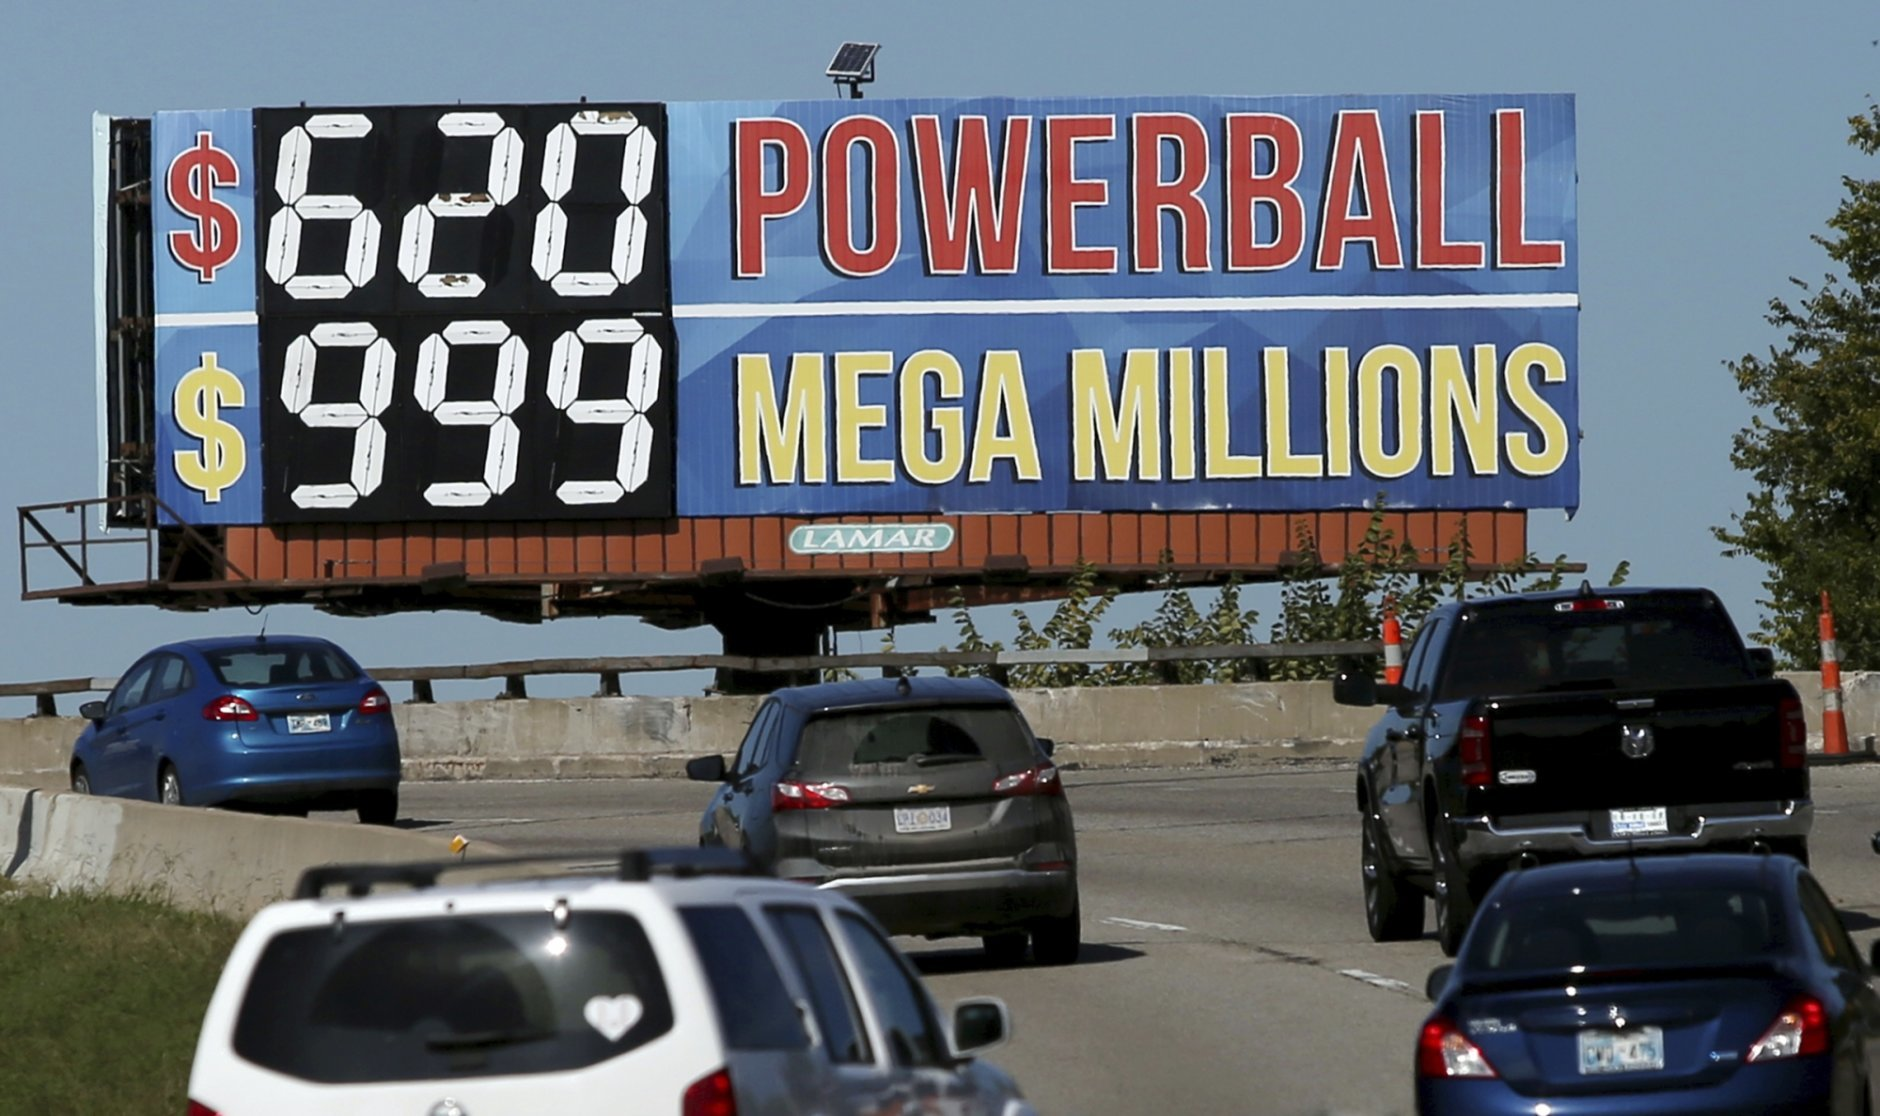 In this Monday, Oct. 22, 2018 photo, drivers on the Broken Arrow Expressway pass a sign with the Powerball and Mega Millions jackpot numbers as they drive toward downtown Tulsa, Okla., Monday, October 22, 2018. (John Clanton/Tulsa World via AP)